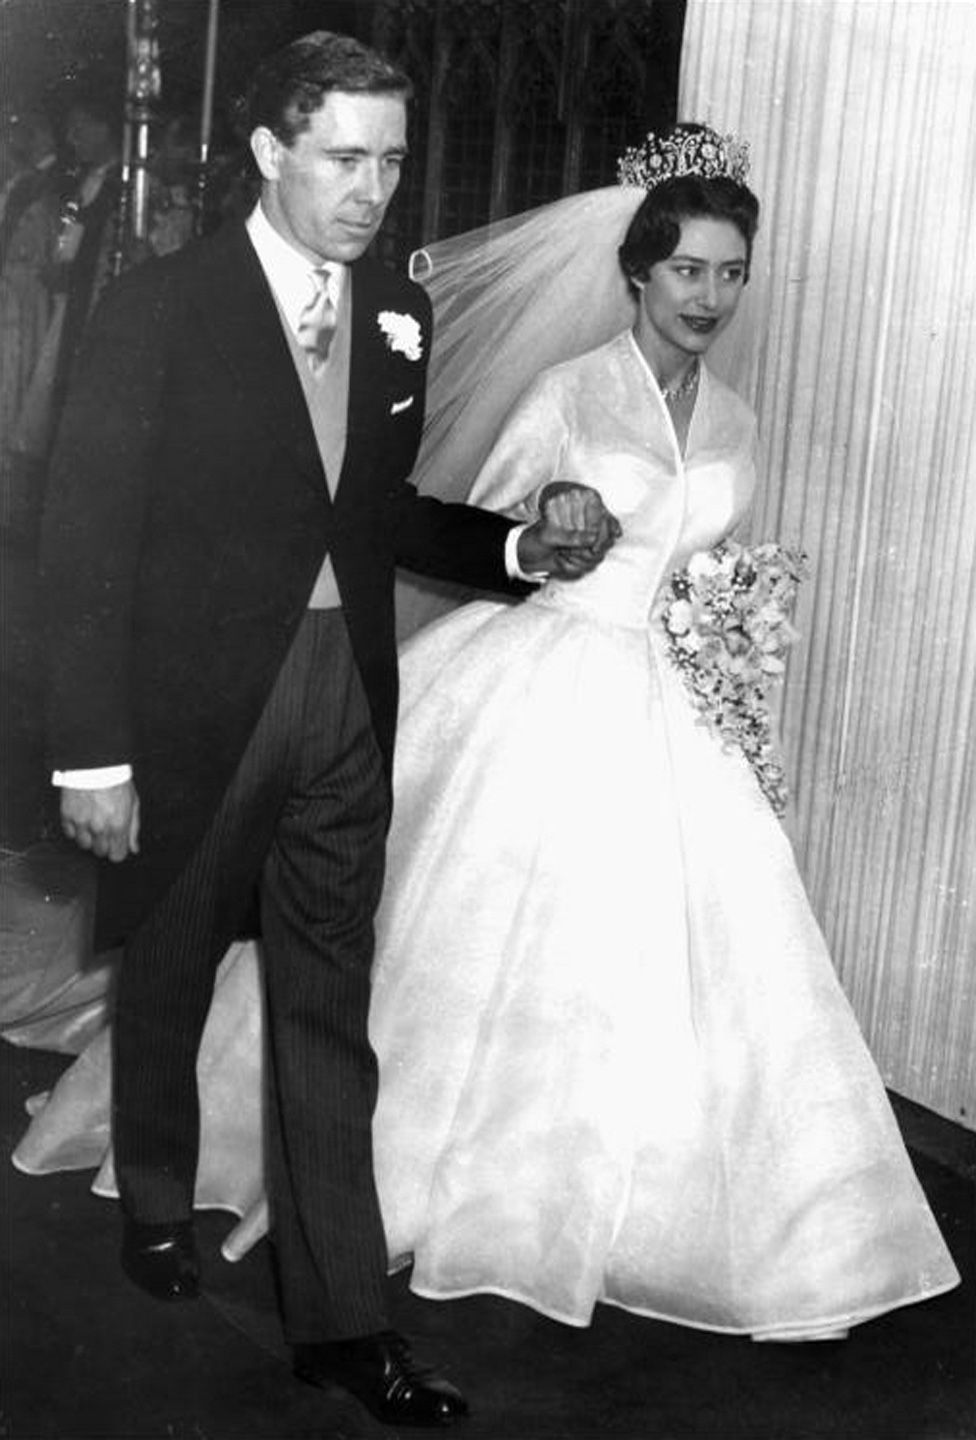 Did the Queen stop Princess Margaret marrying Peter Townsend